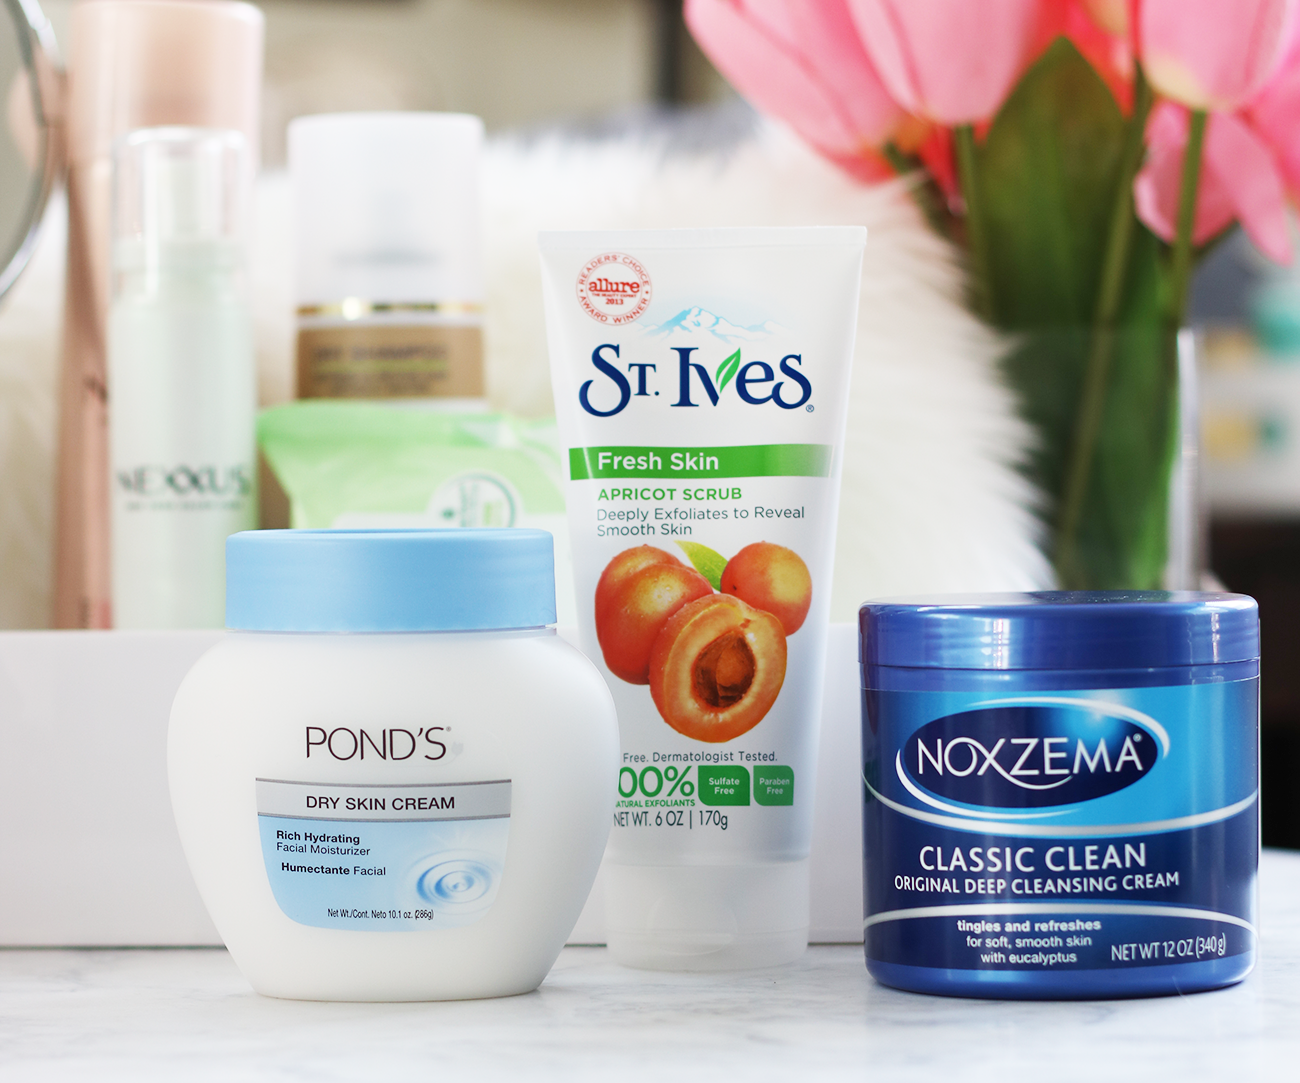 As I grow one year older, I always try to make the New Year's resolution to make sure I take better care of my skin. Today I am sharing my top favorite winter skincare rules to help you achieve your skin looking fabulous + glowing all winter long.